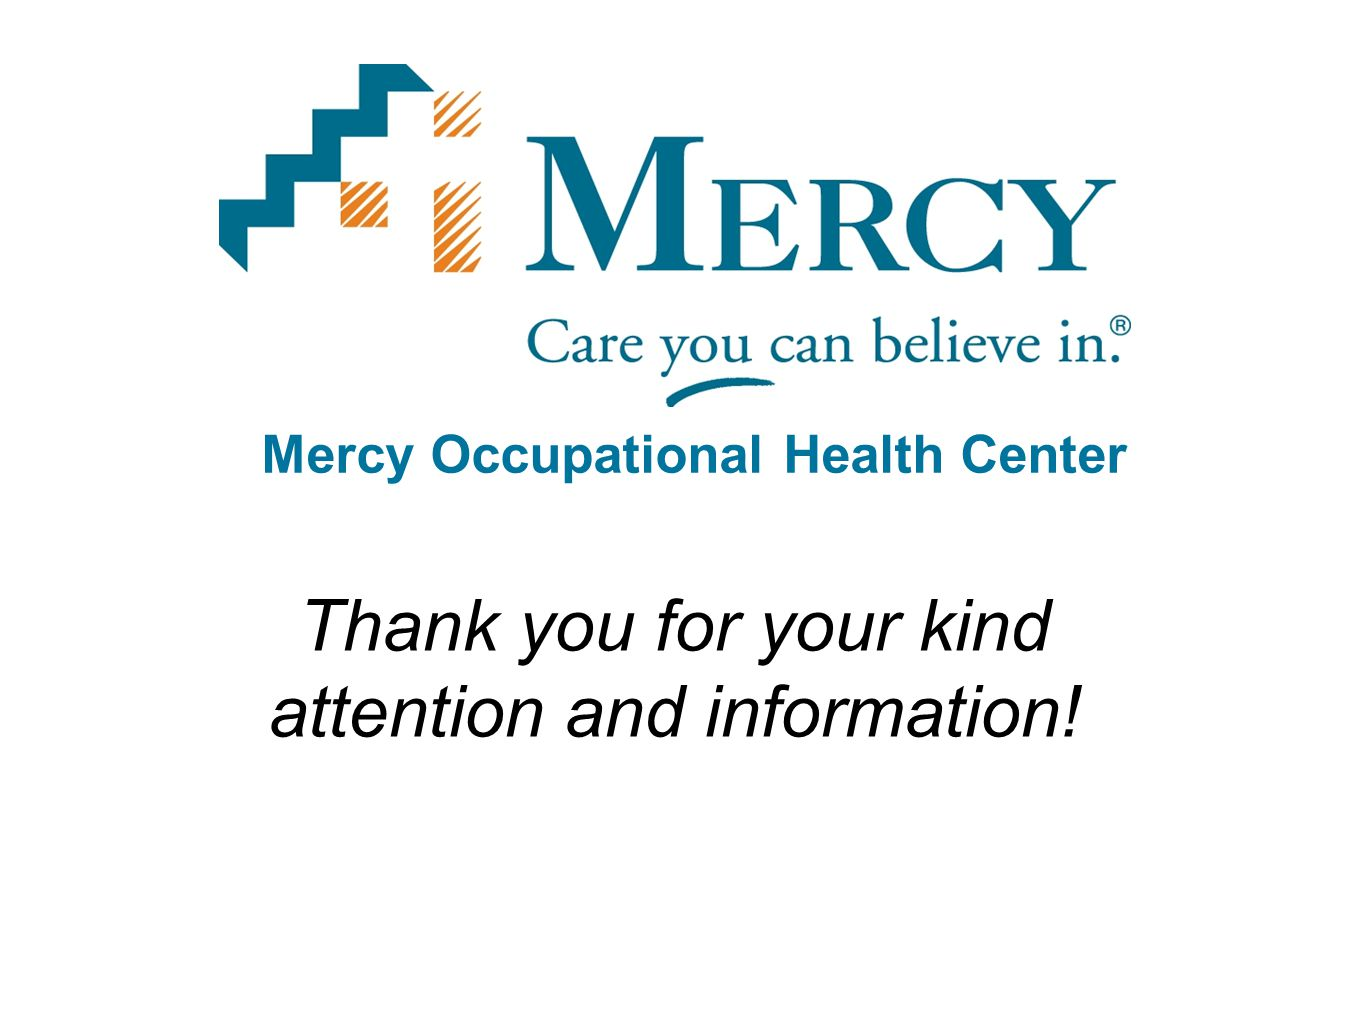 Mercy Occupational Health Center Thank you for your kind attention and information!